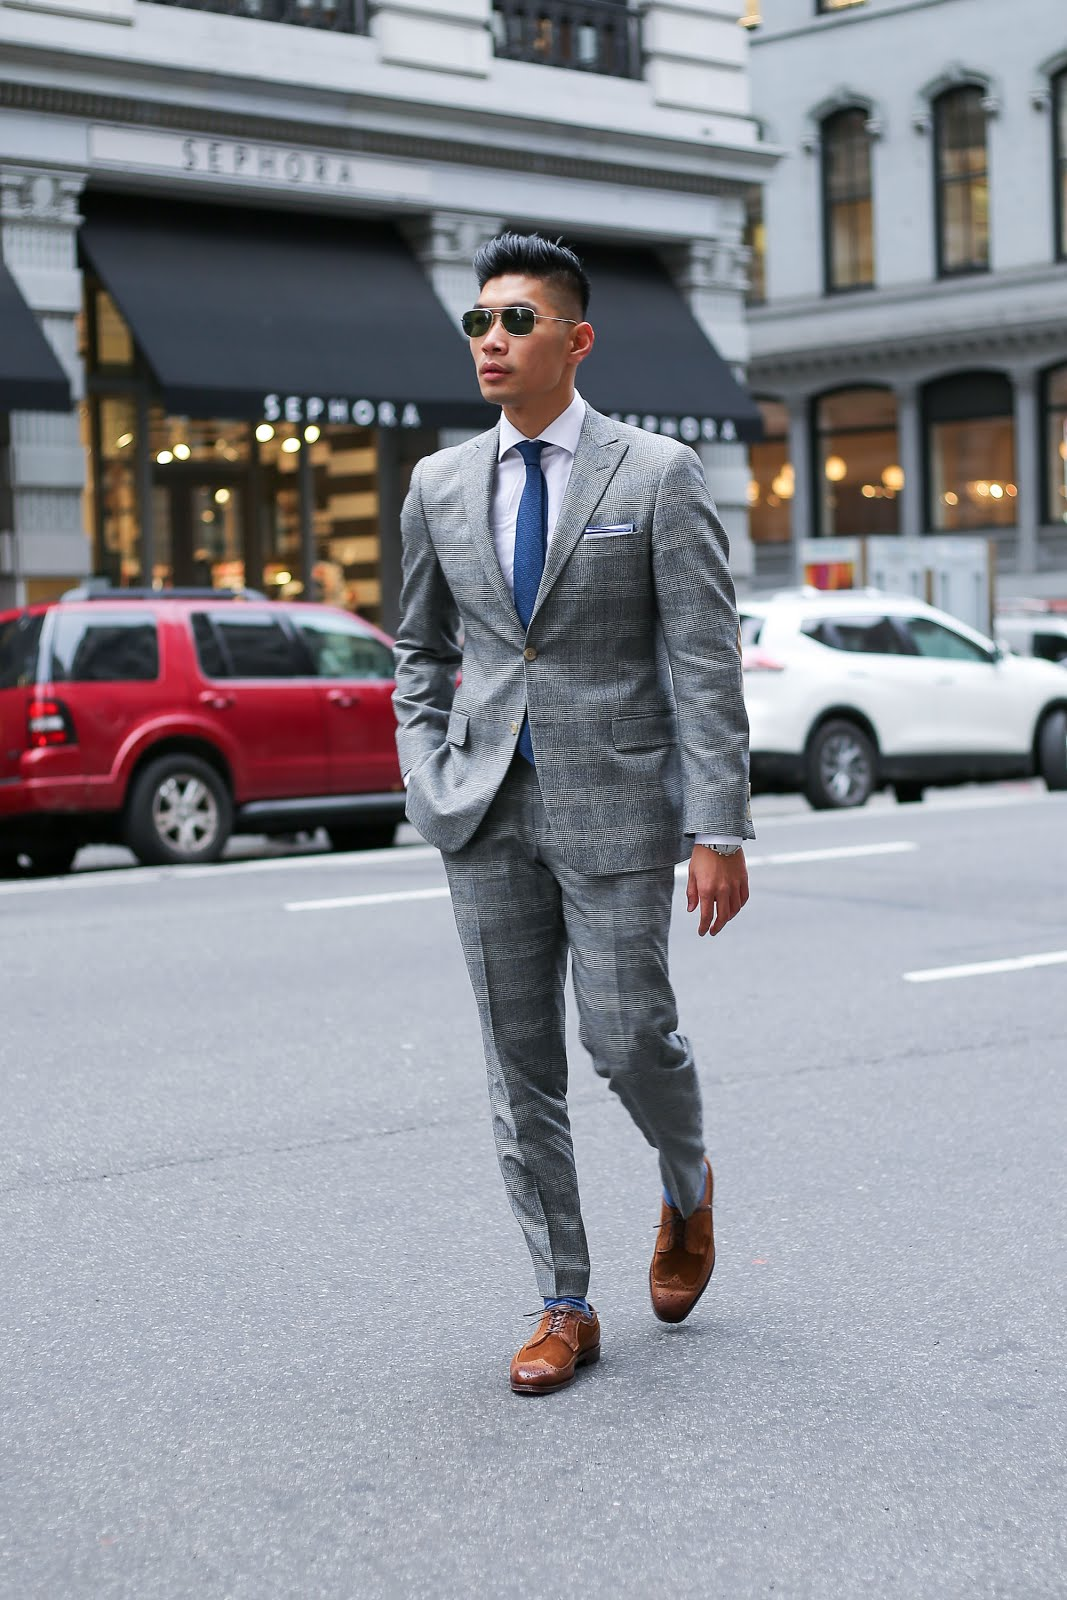 GQ Holiday Style Report, Peak Lapel, Glen Plaid, Custom Made Suit